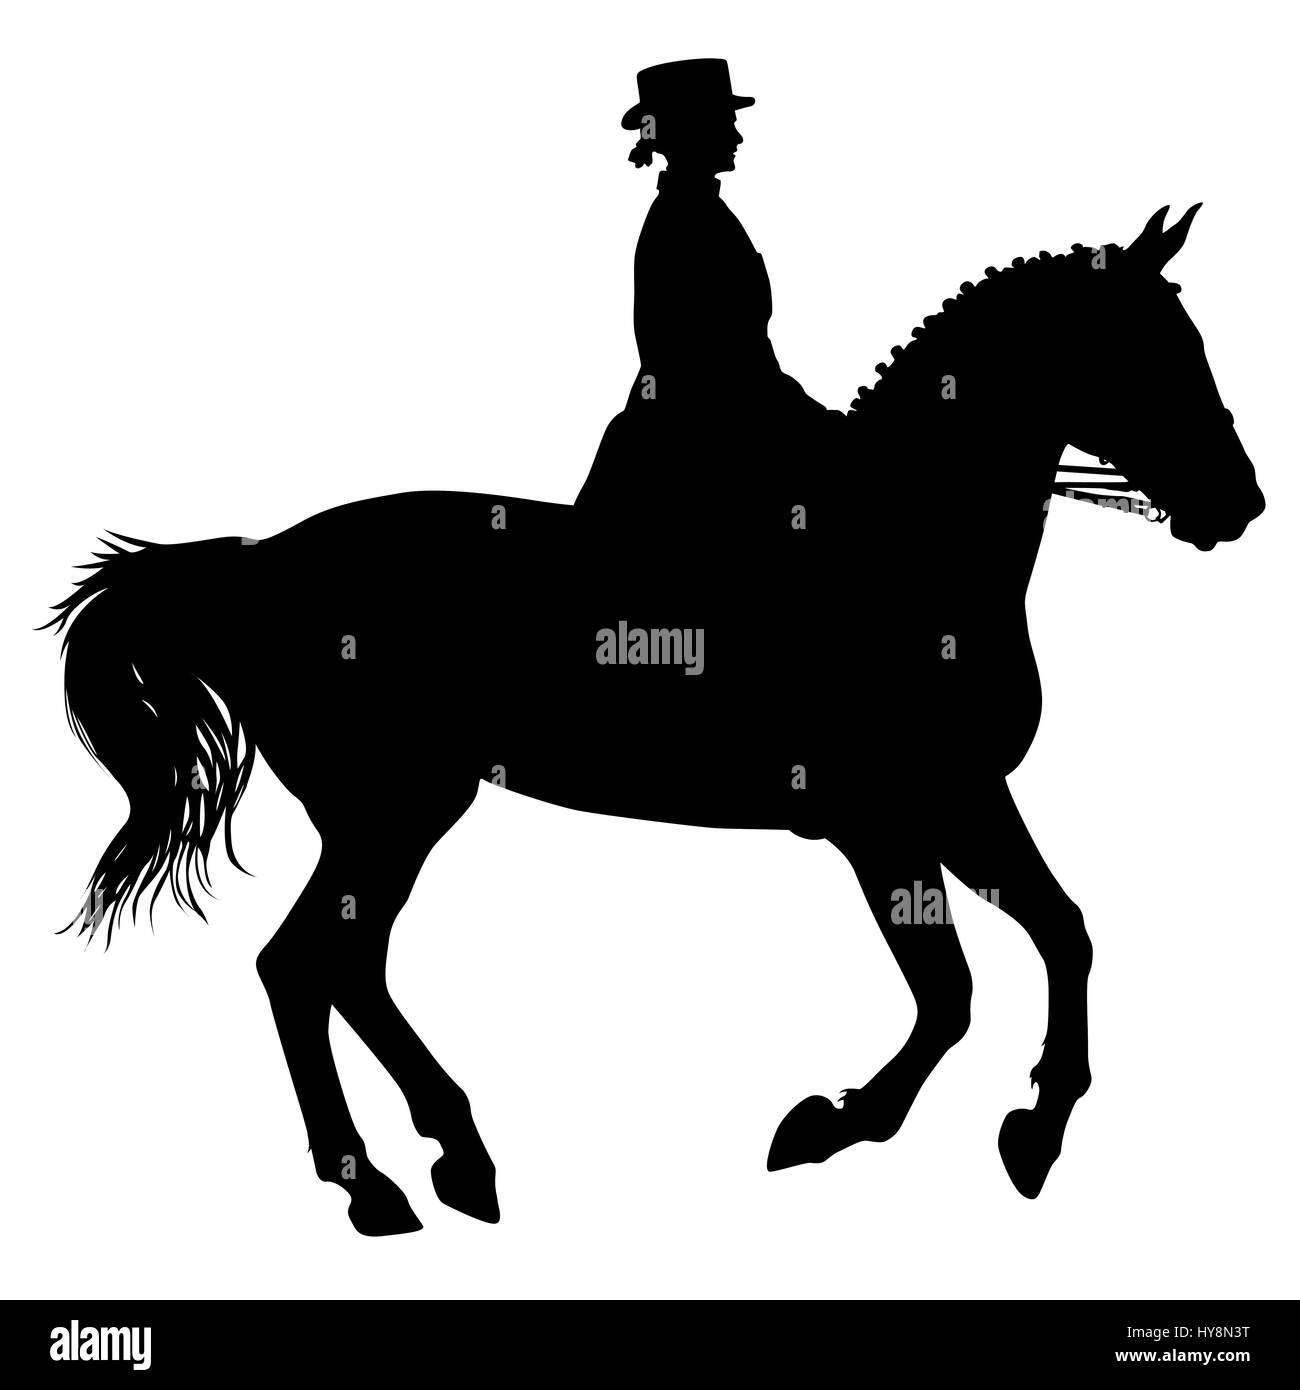 Horse cantering silhouette